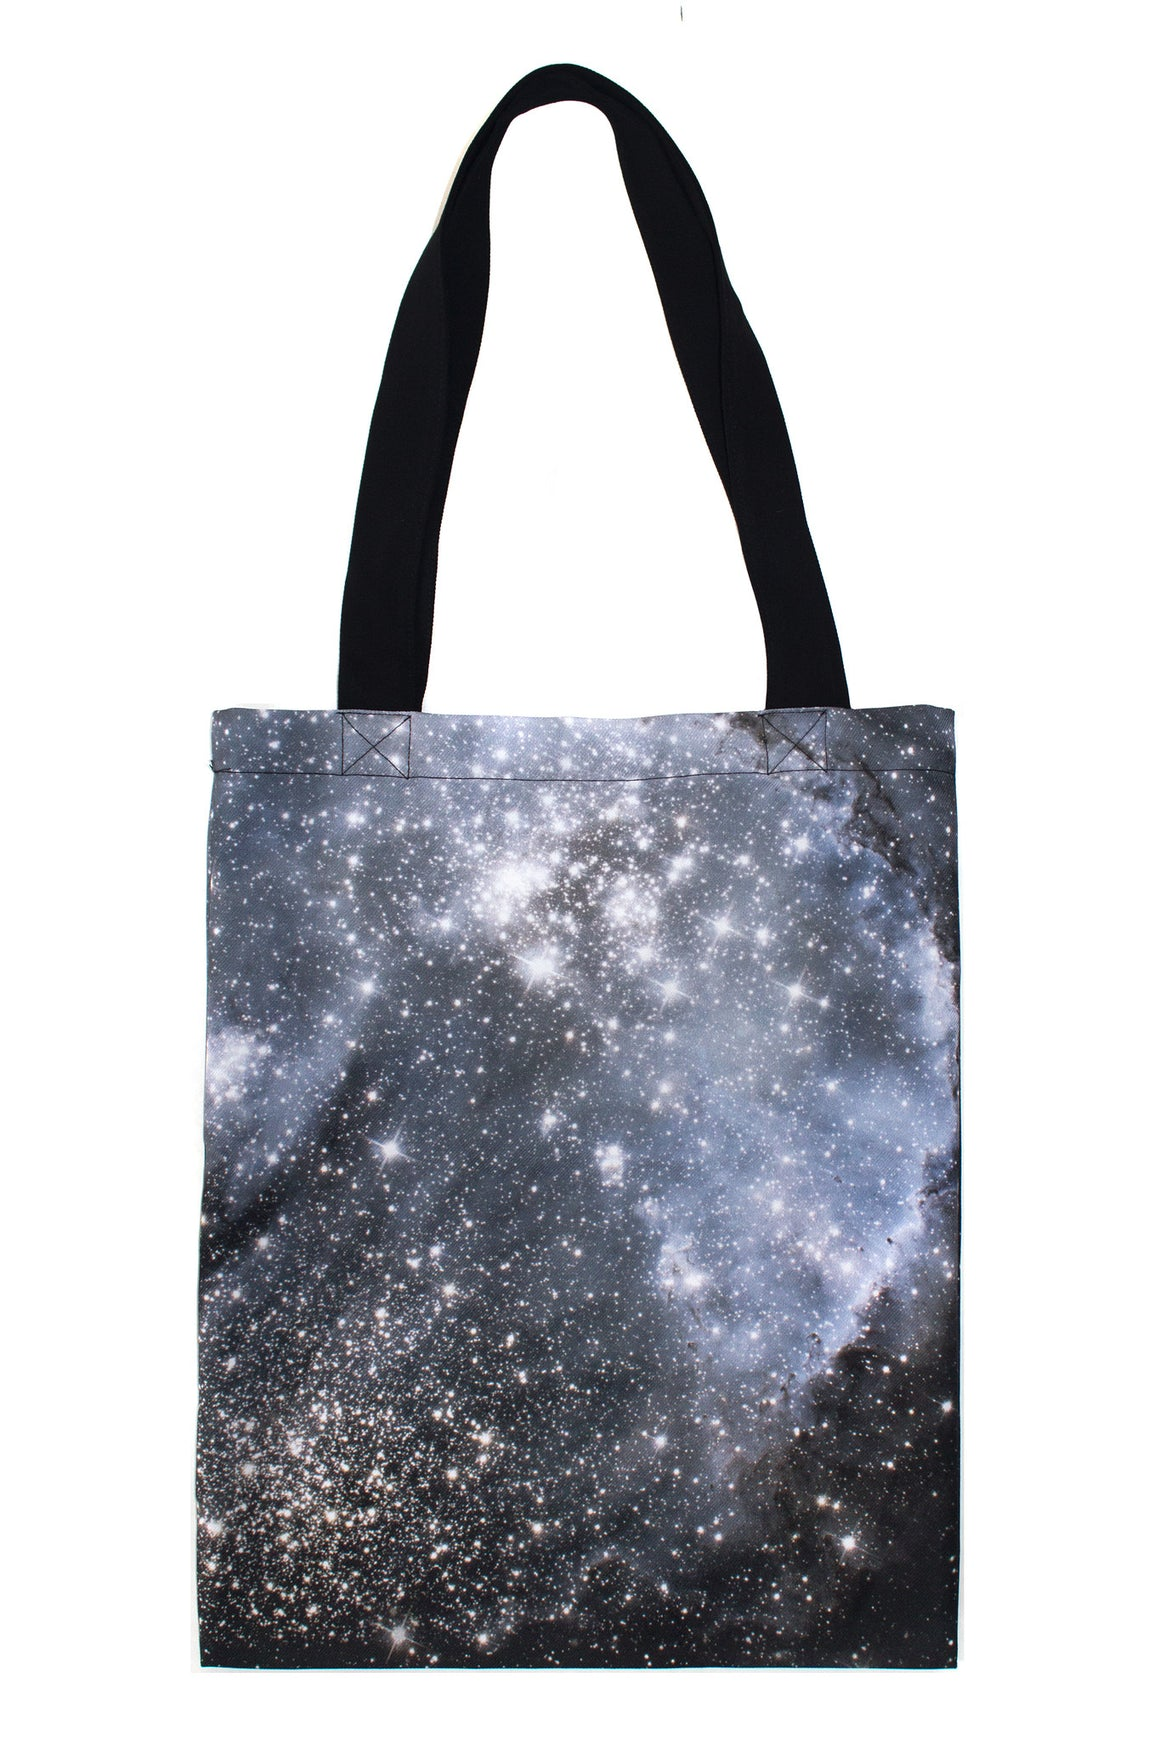 Hubble Galaxy Tote, Shadowplay New York, Galaxy Print Clothes